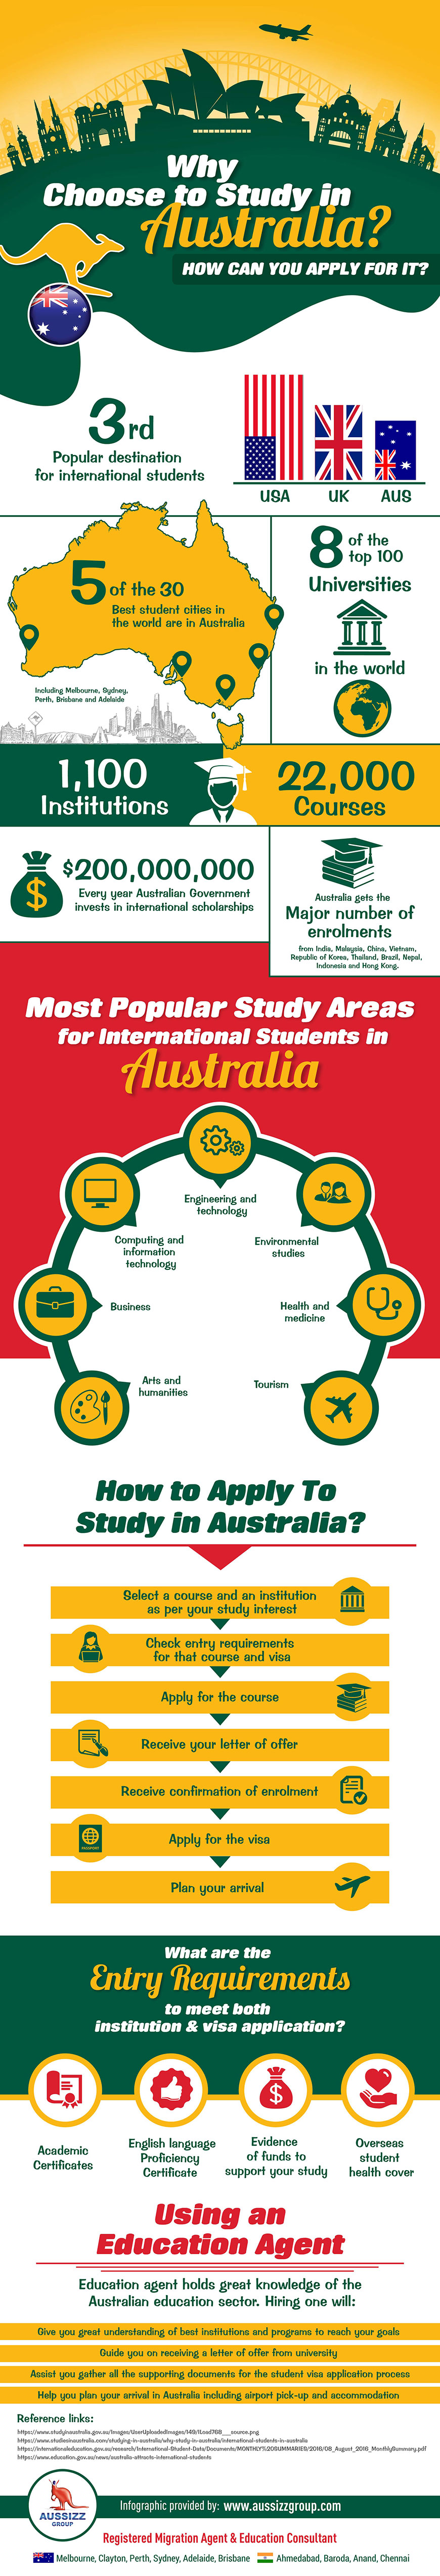 Why Choose to Study in Australia? How can you apply for it?